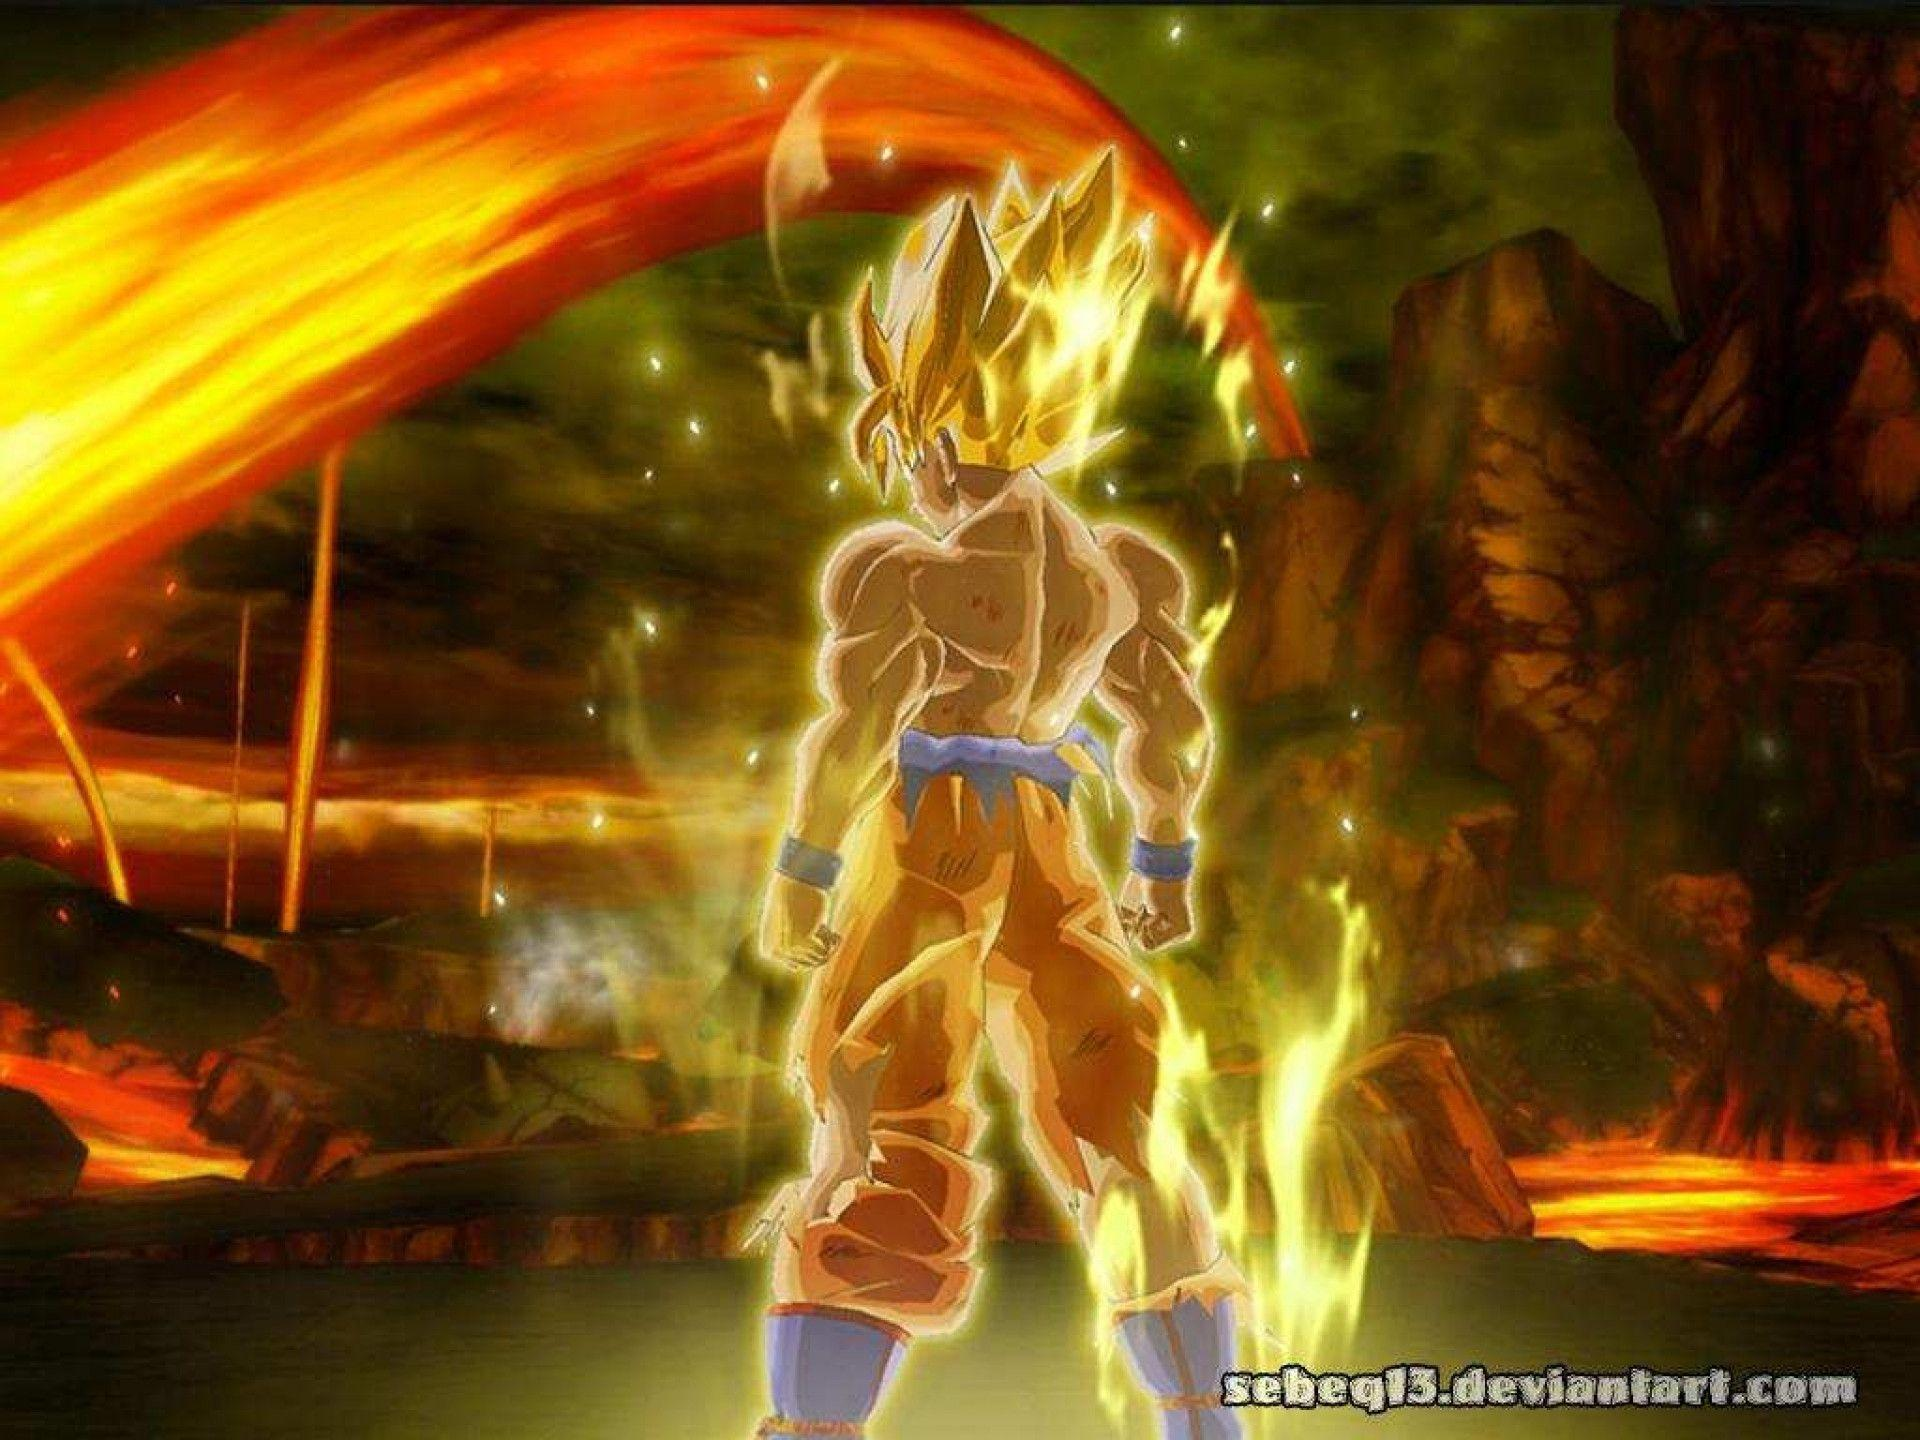 Dragon ball z hd wallpapers wallpaper cave - 3d wallpaper of dragon ball z ...